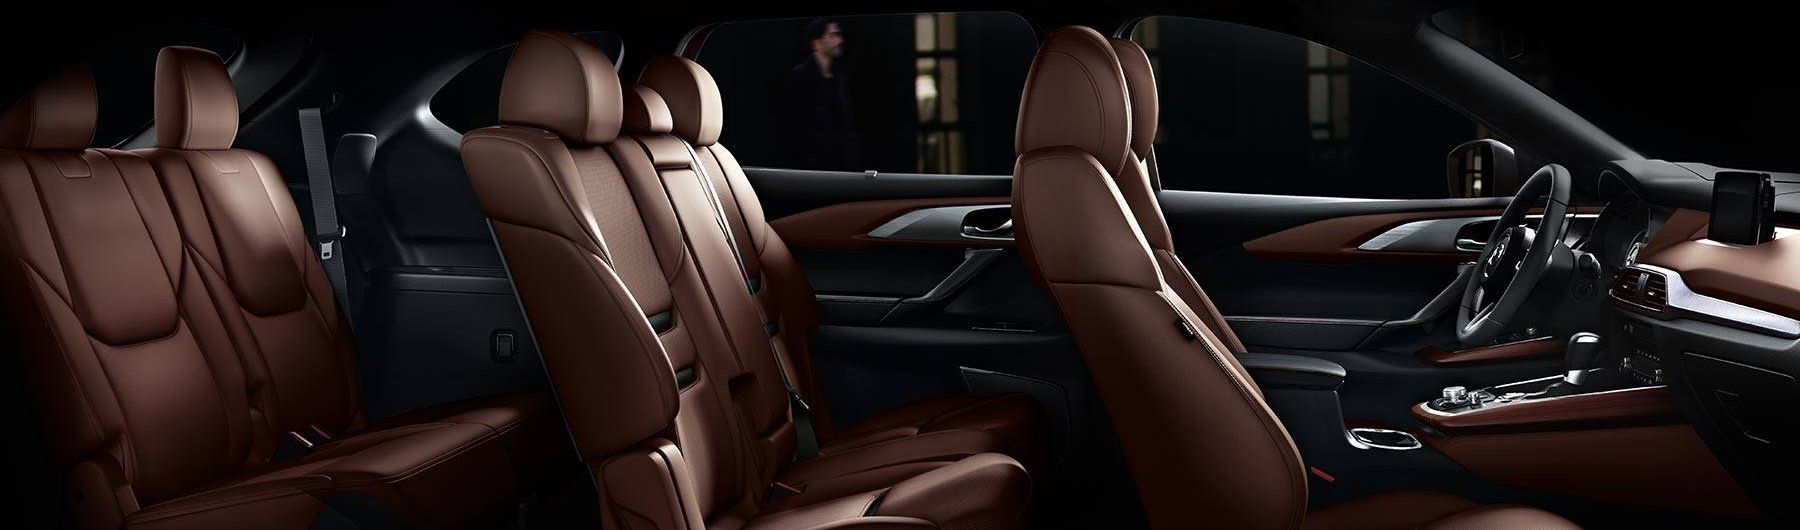 Seating for Seven in the Mazda CX-9!